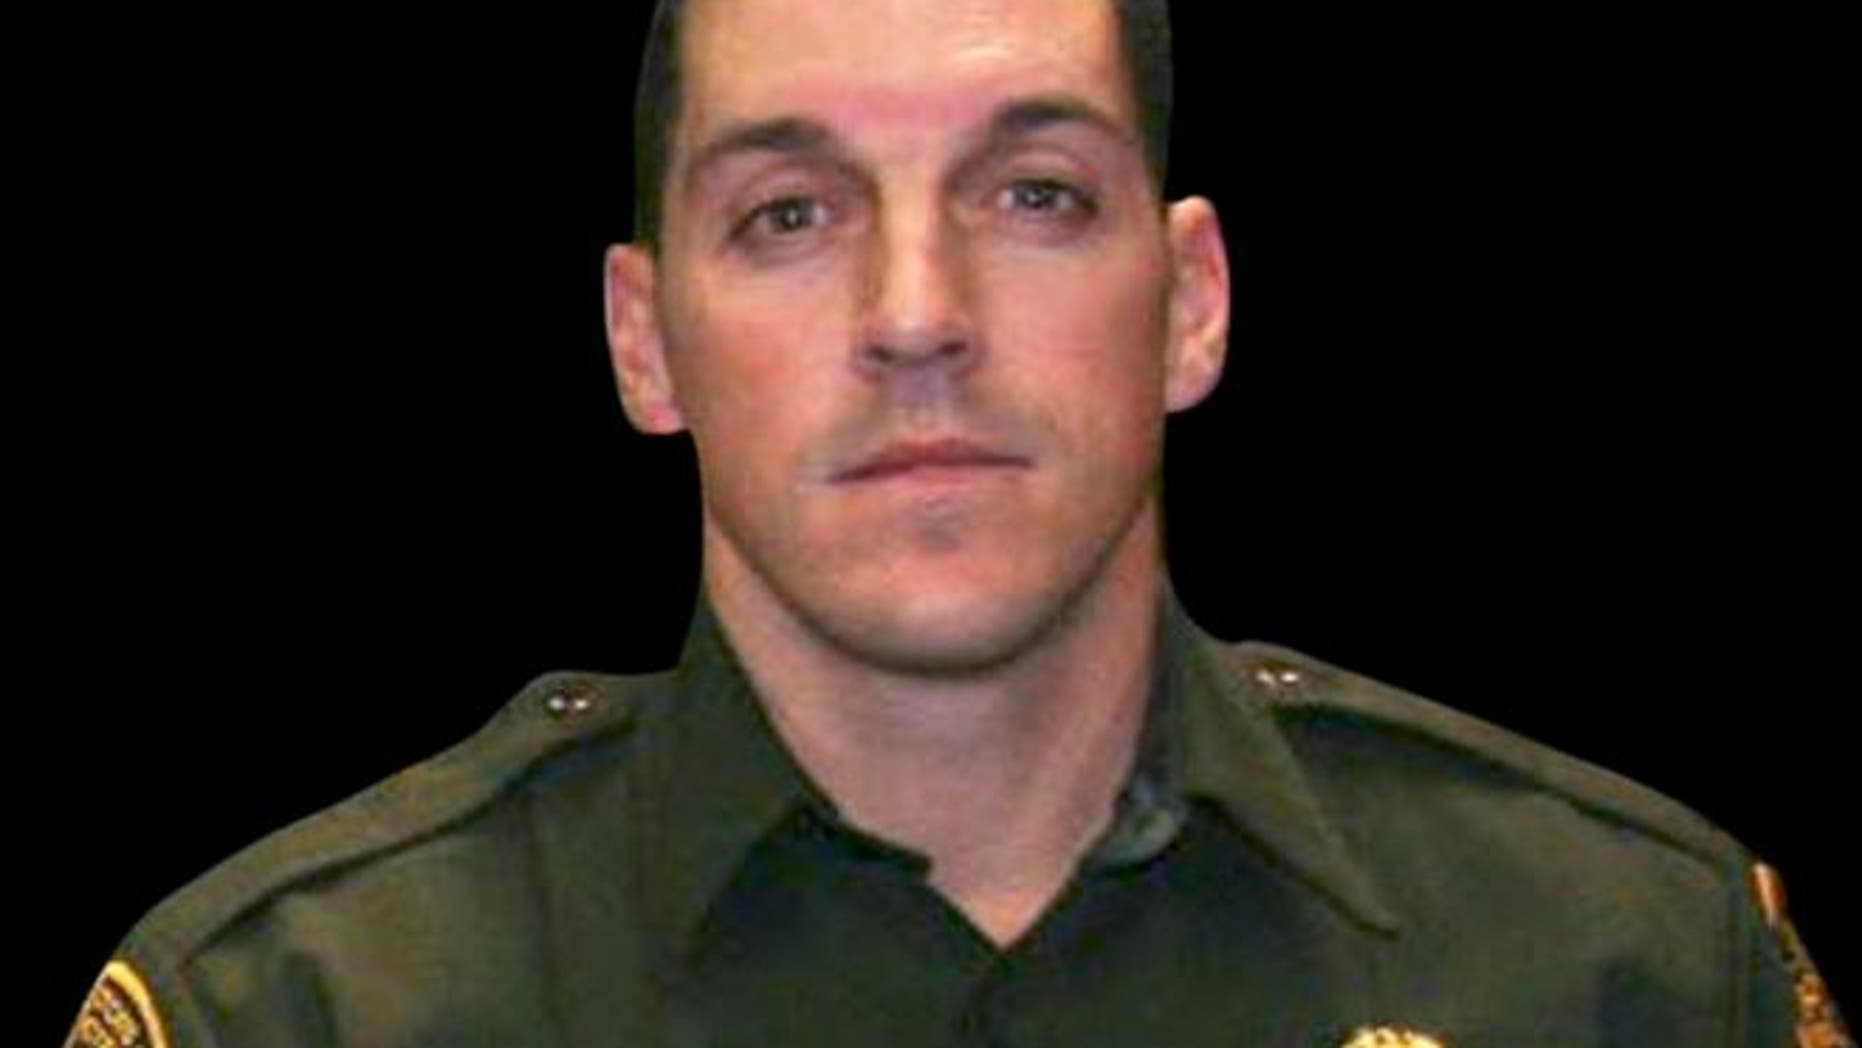 This undated photo provided by U.S. Customs and Border Protection shows U.S. Border Patrol agent Brian A. Terry. (AP Photo/U.S. Customs and Border Protection, File)